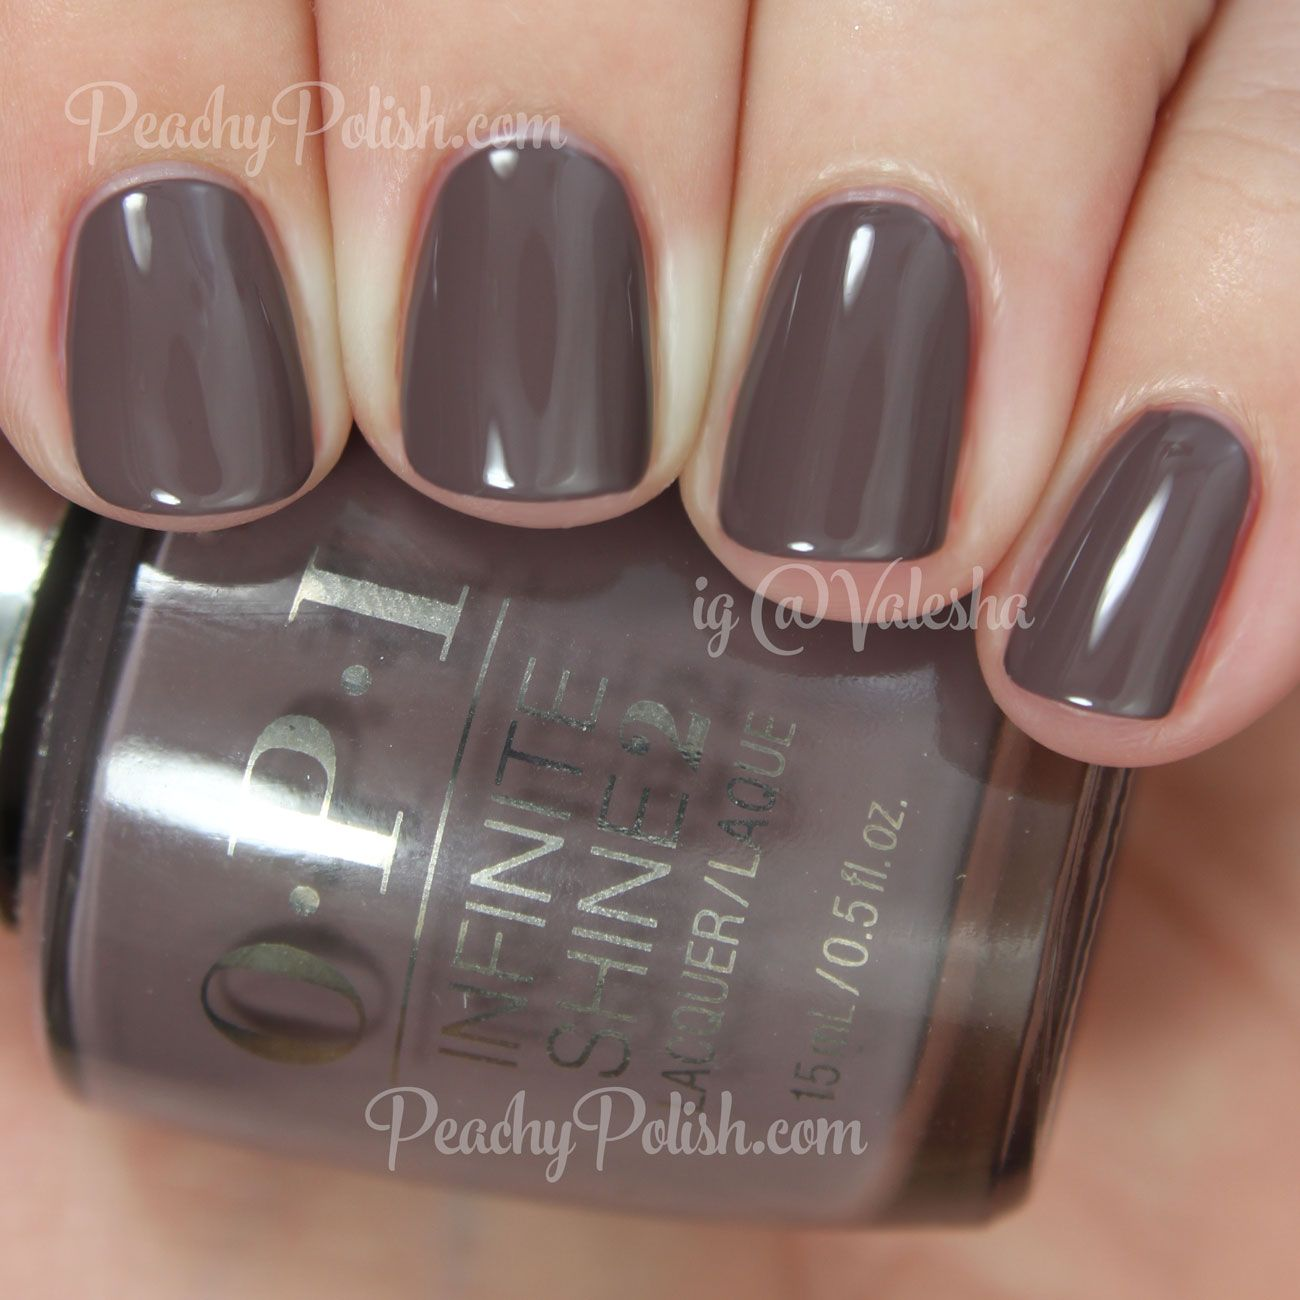 Opi Set In Stone Infinite Shine Collection Peachy Polish Ooooh Dark Taupe Grey